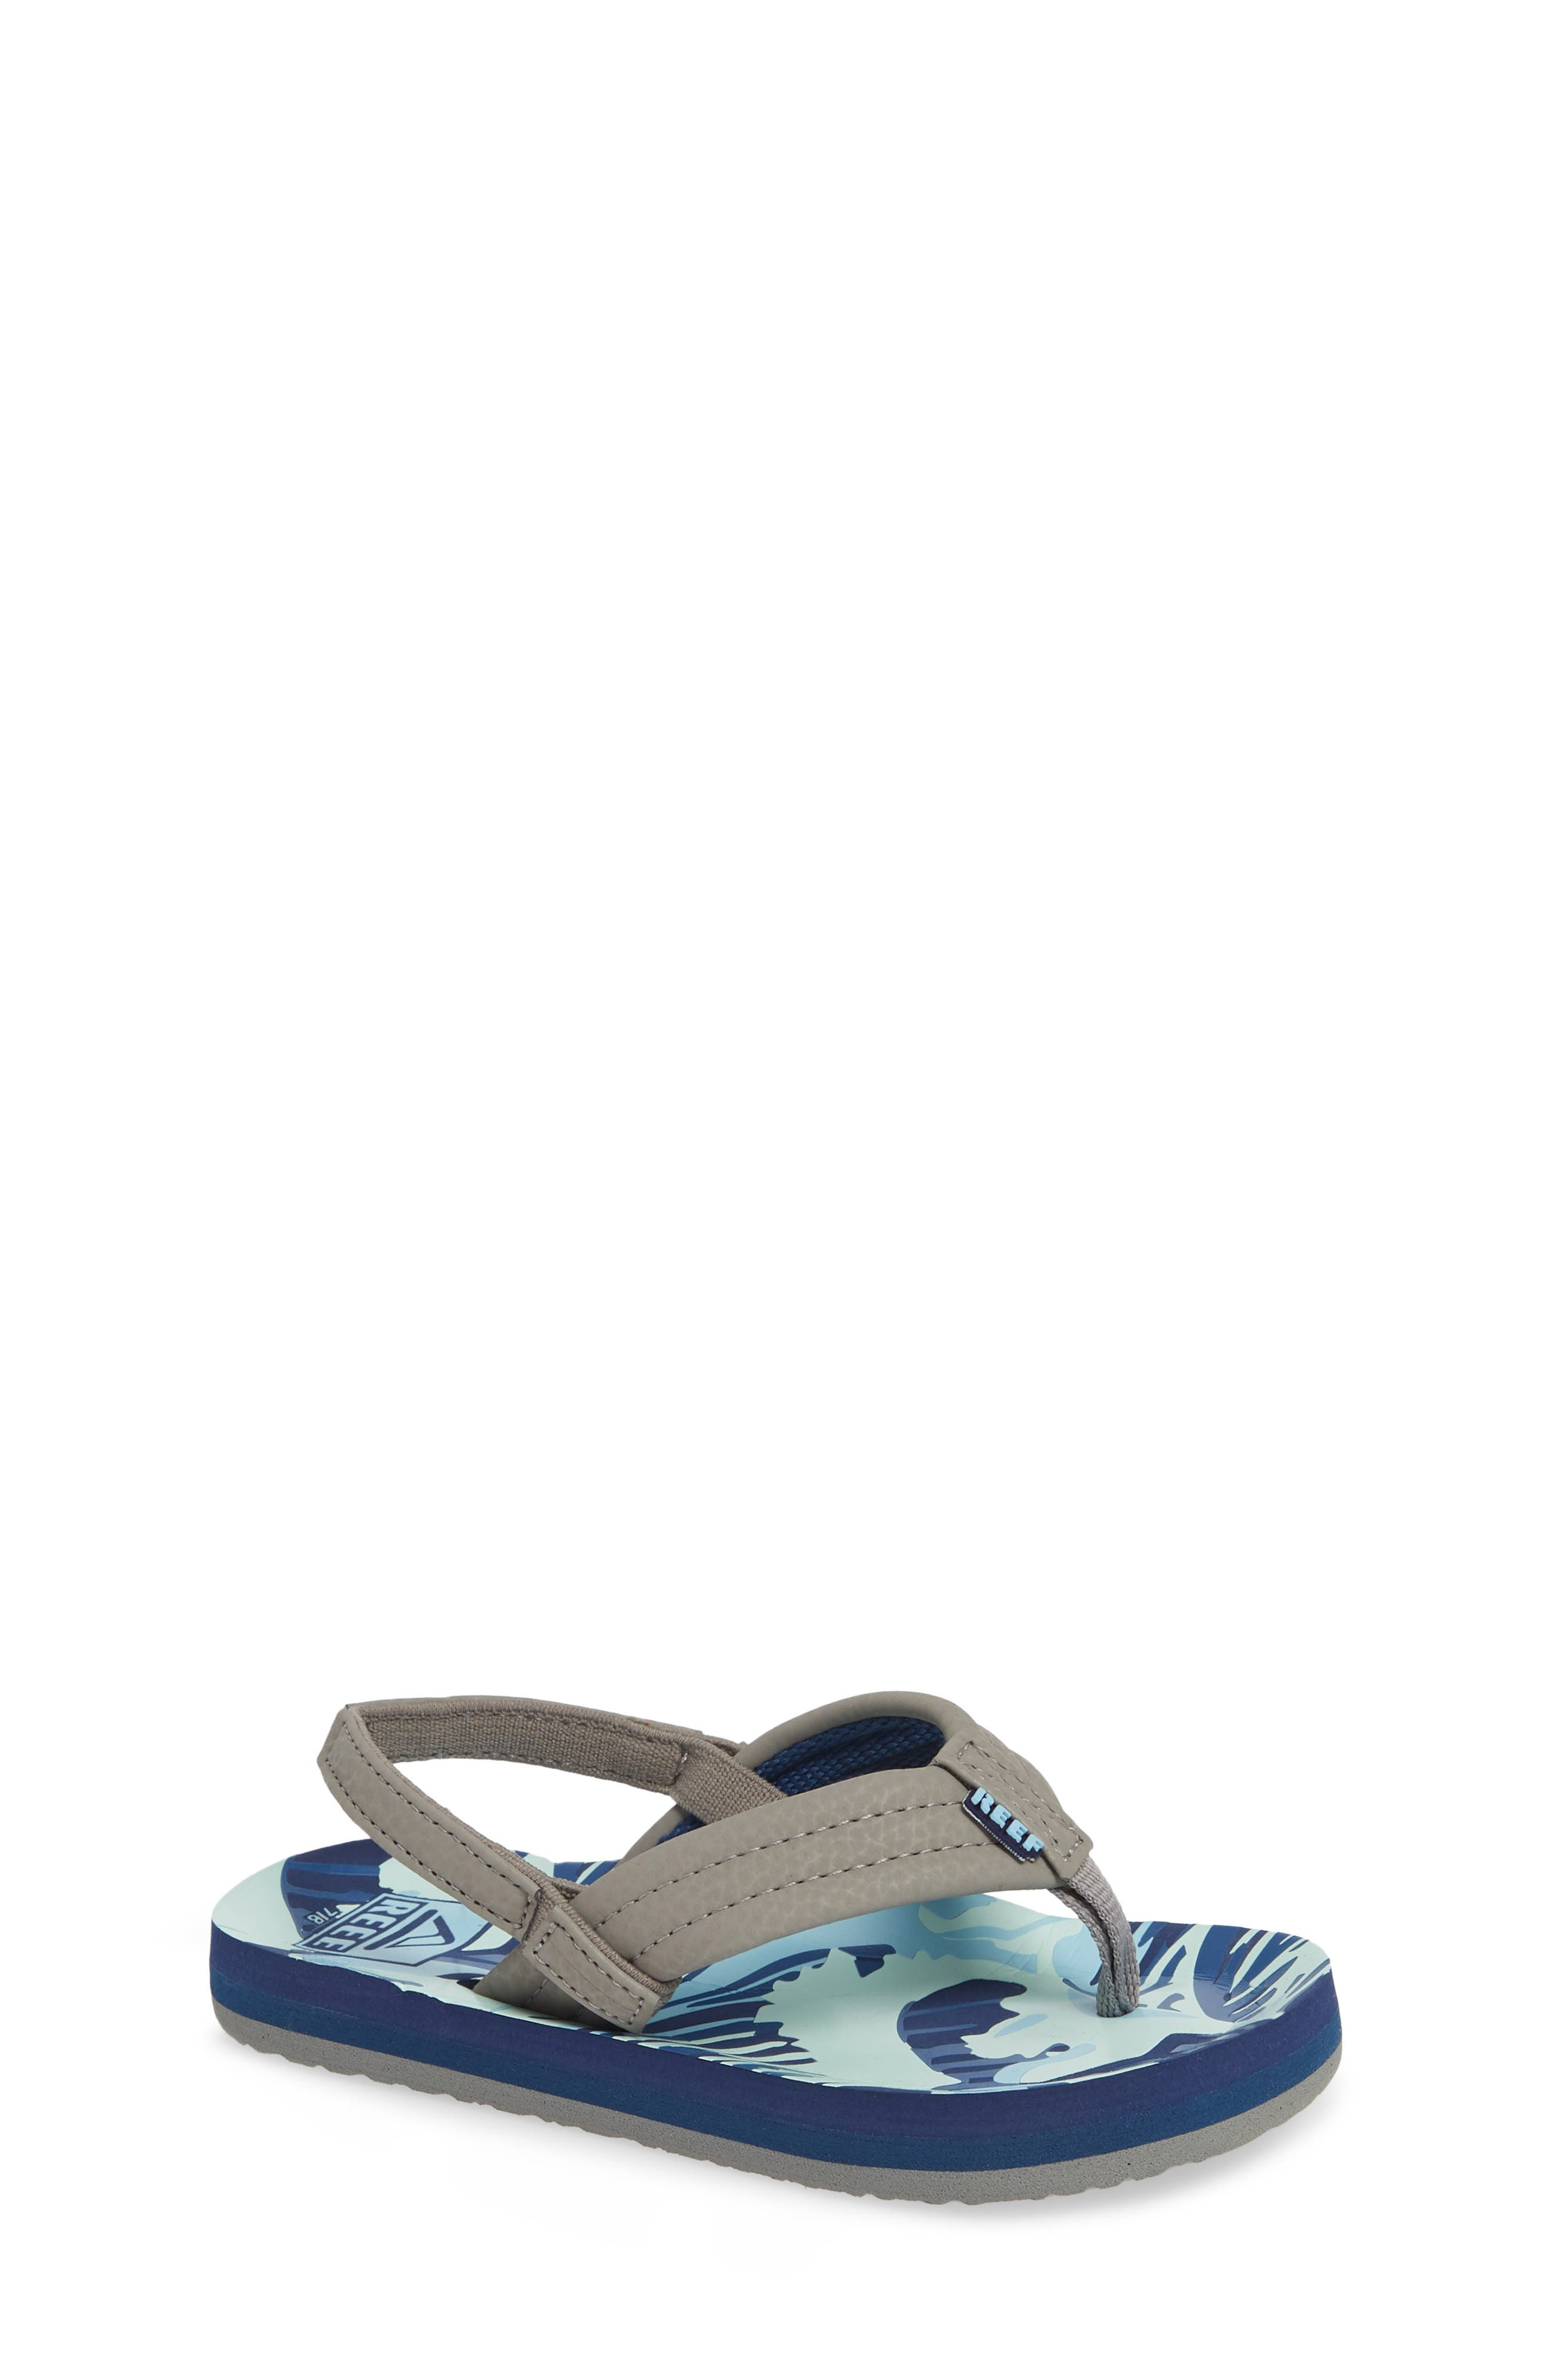 59c4936991eb Reef Sandals - Women s